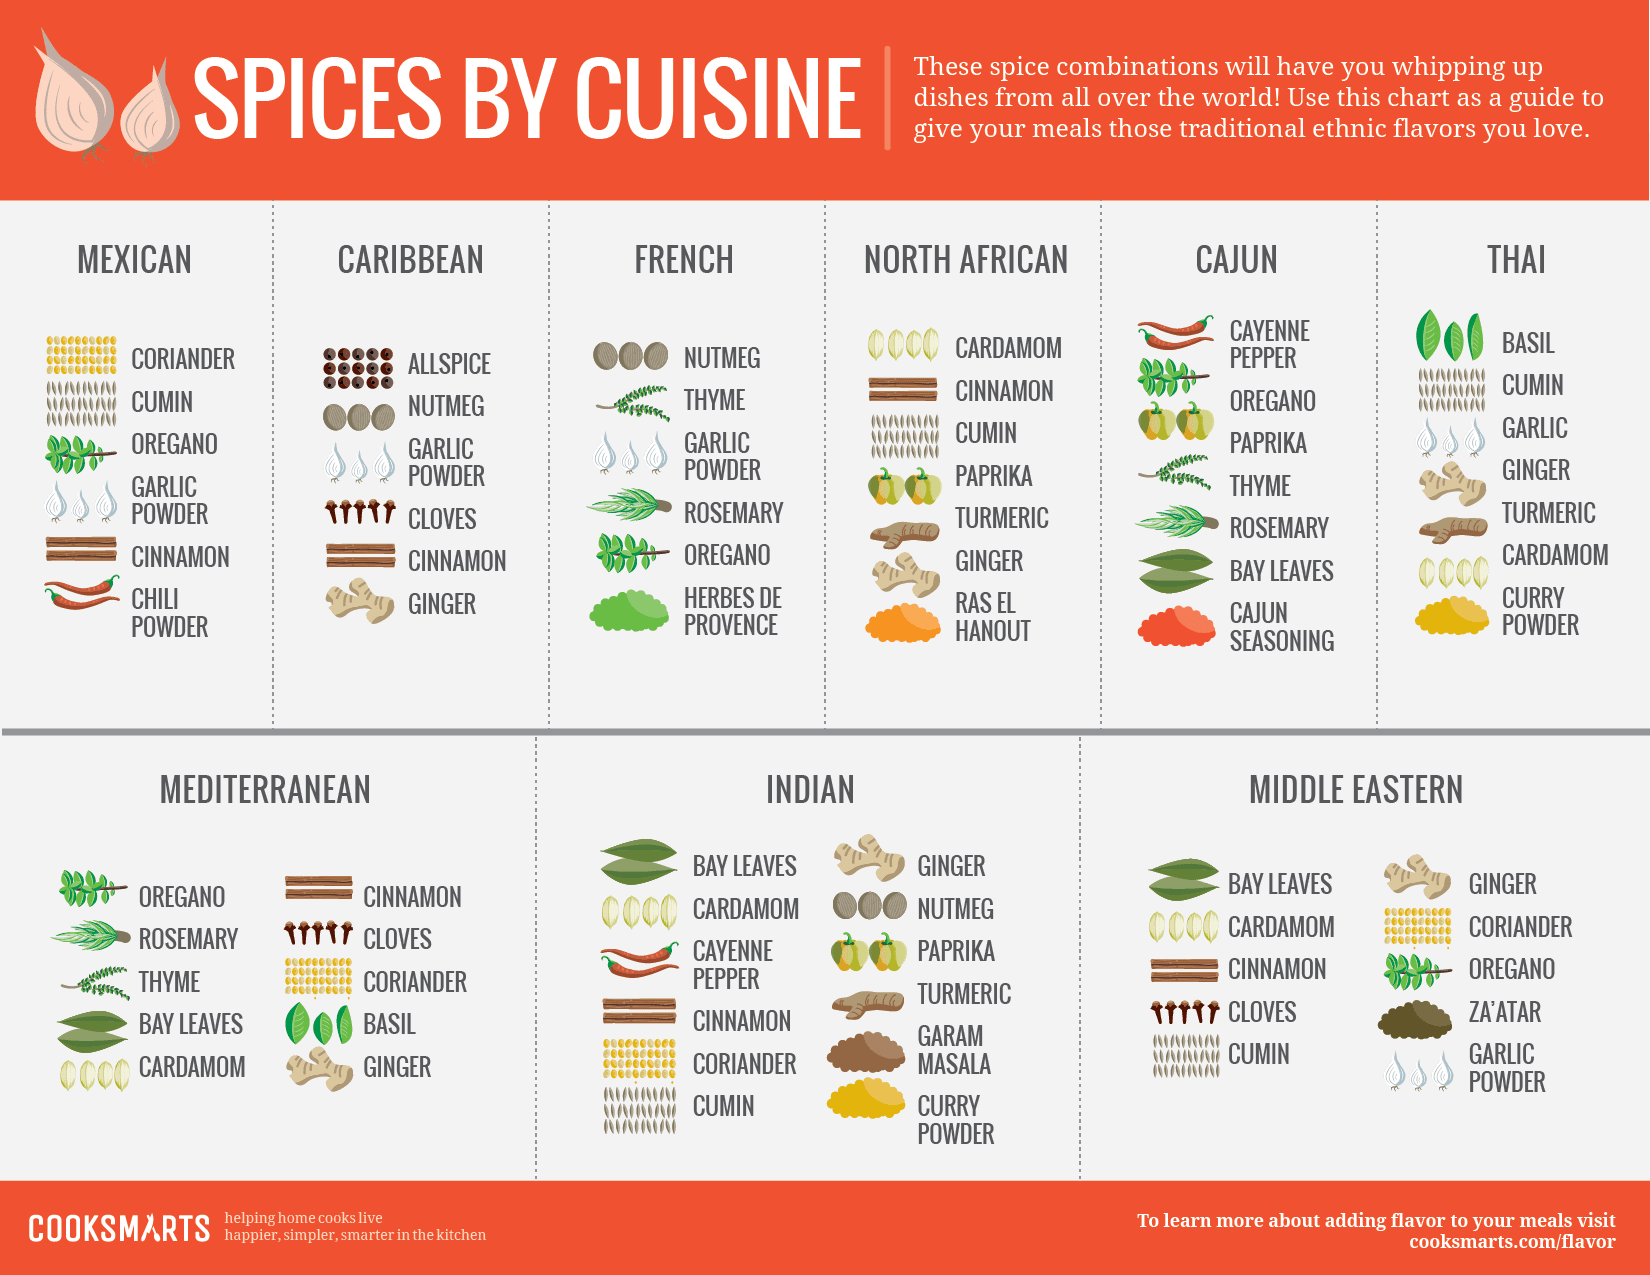 cook-smarts-spices-by-cuisine_543327a5a7db5.png